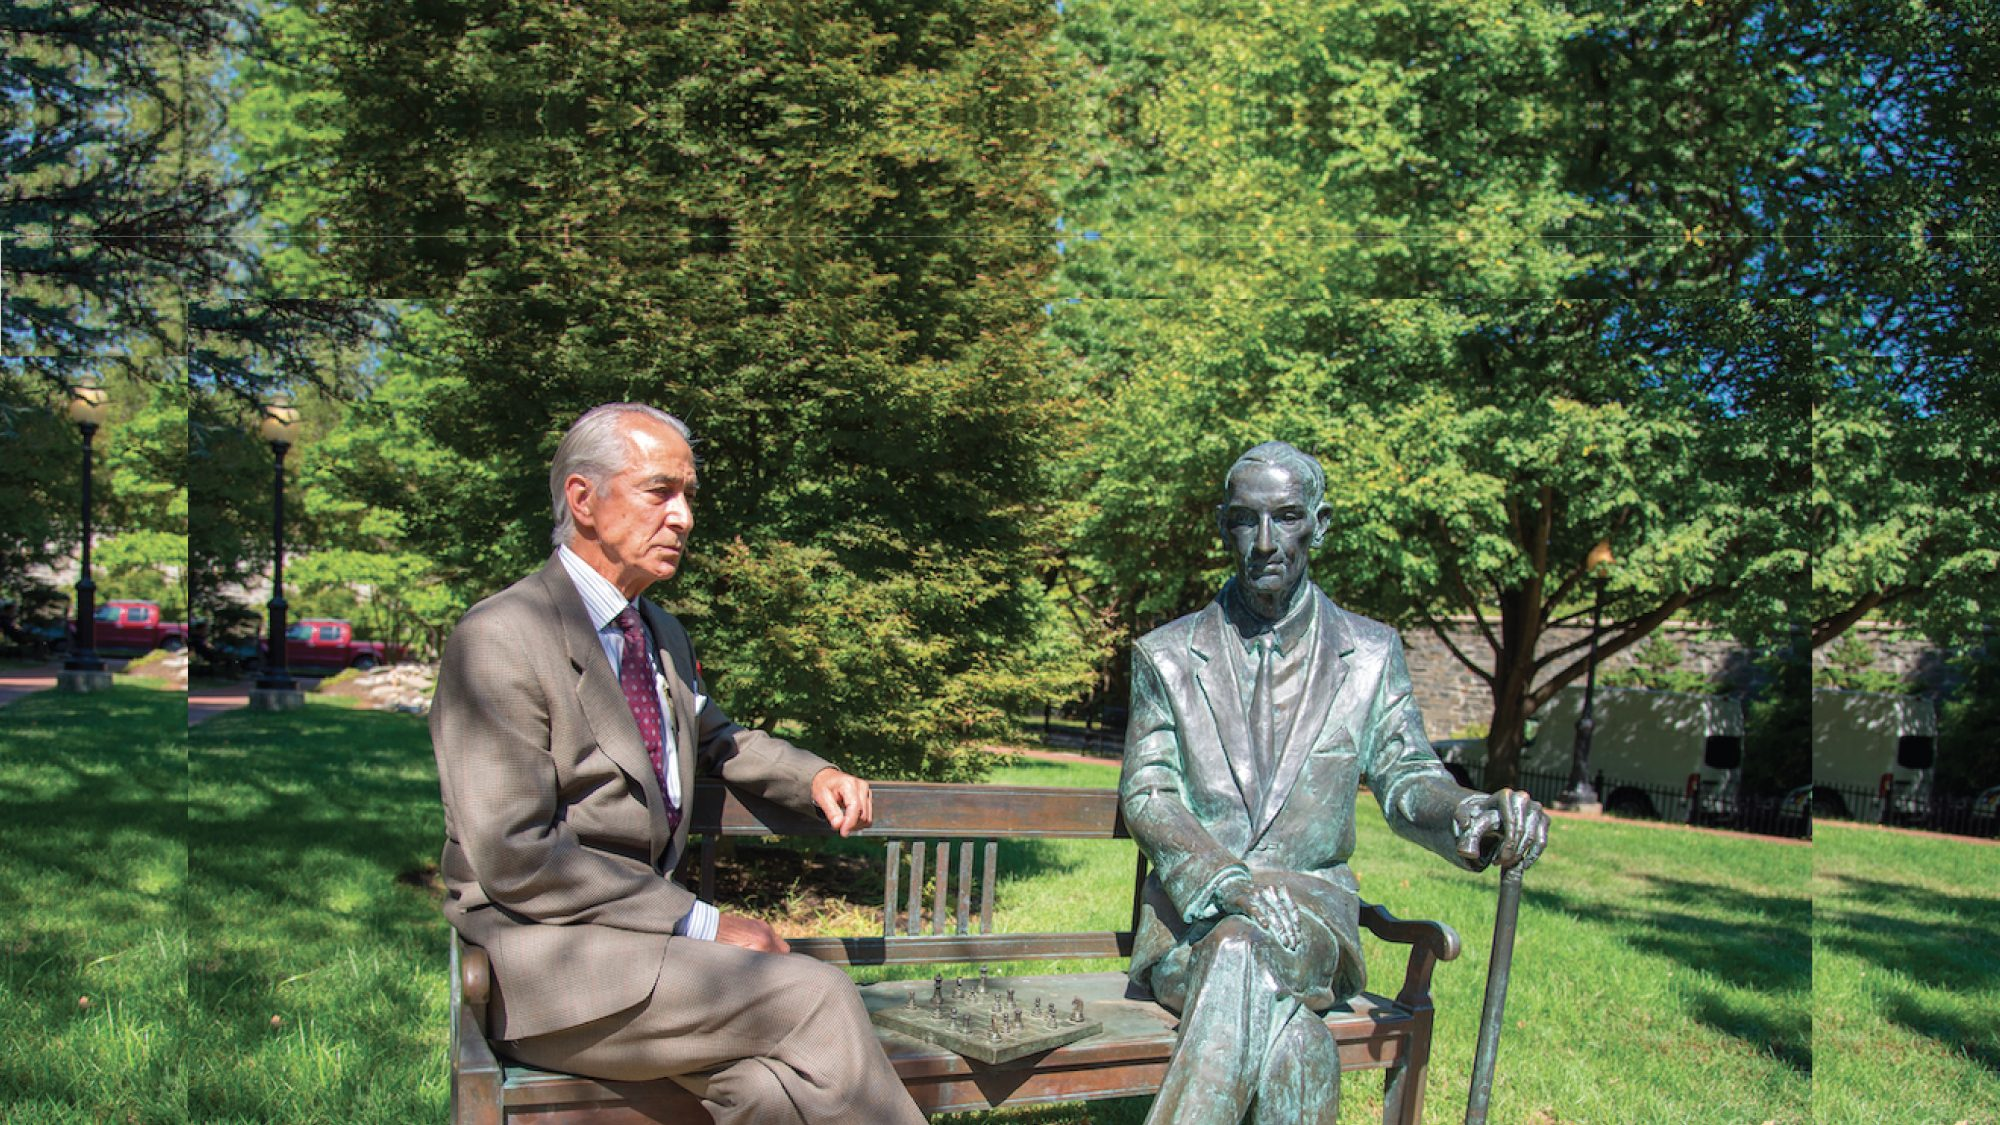 Oscar-nominated actor David Strathairn sits on the iconic commemorative bench with statue honoring Holocaust witness, Polish World War II hero, spy and diplomat, Jan Karski, one of the most influential Professors ever to teach at Georgetown University.